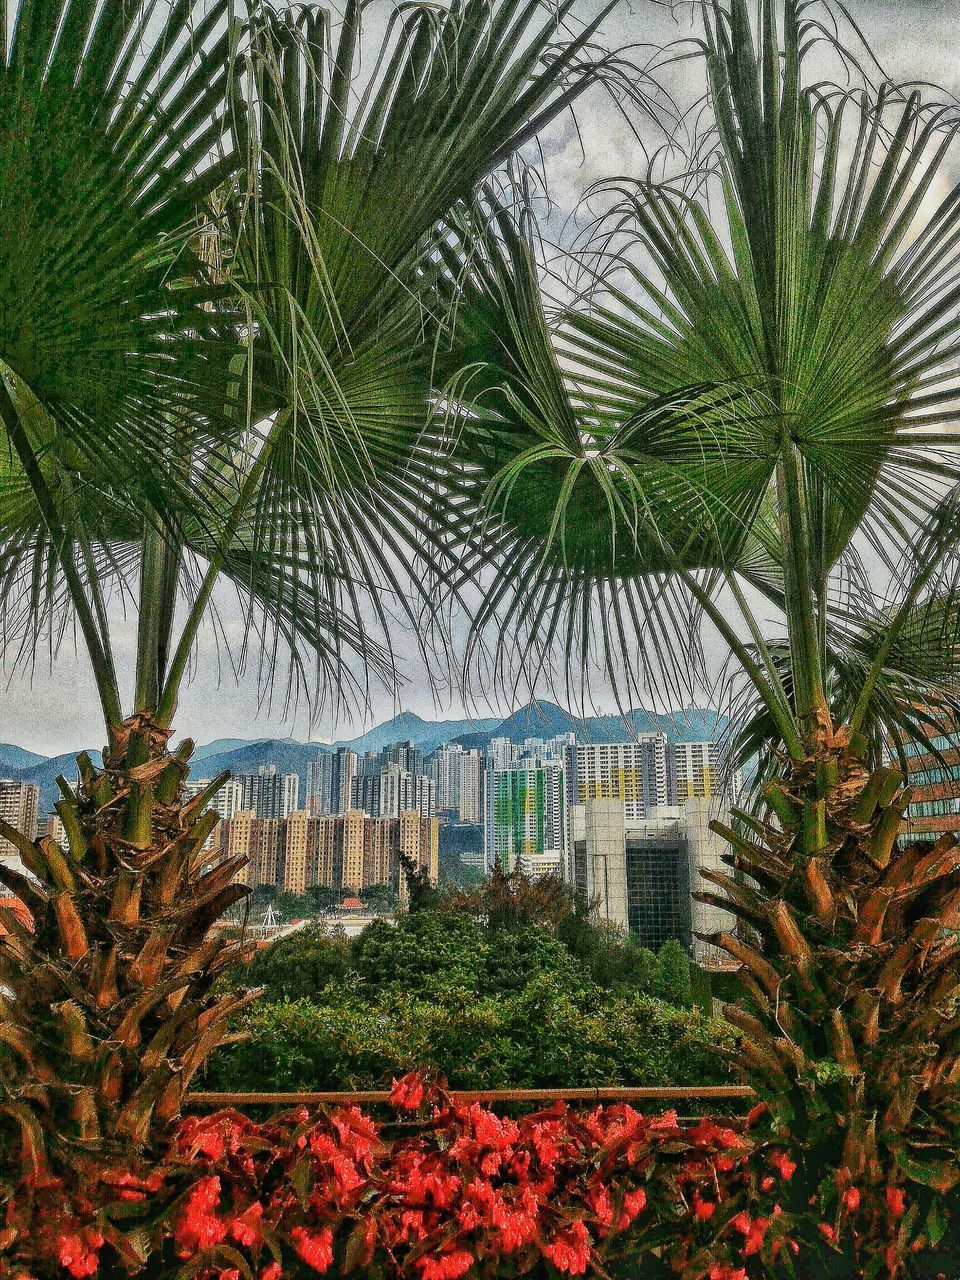 palm tree, tree, plant, growth, day, leaf, outdoors, tourist resort, no people, nature, flower, building exterior, travel destinations, vacations, scenics, architecture, built structure, beauty in nature, frond, greenhouse, sky, freshness, close-up